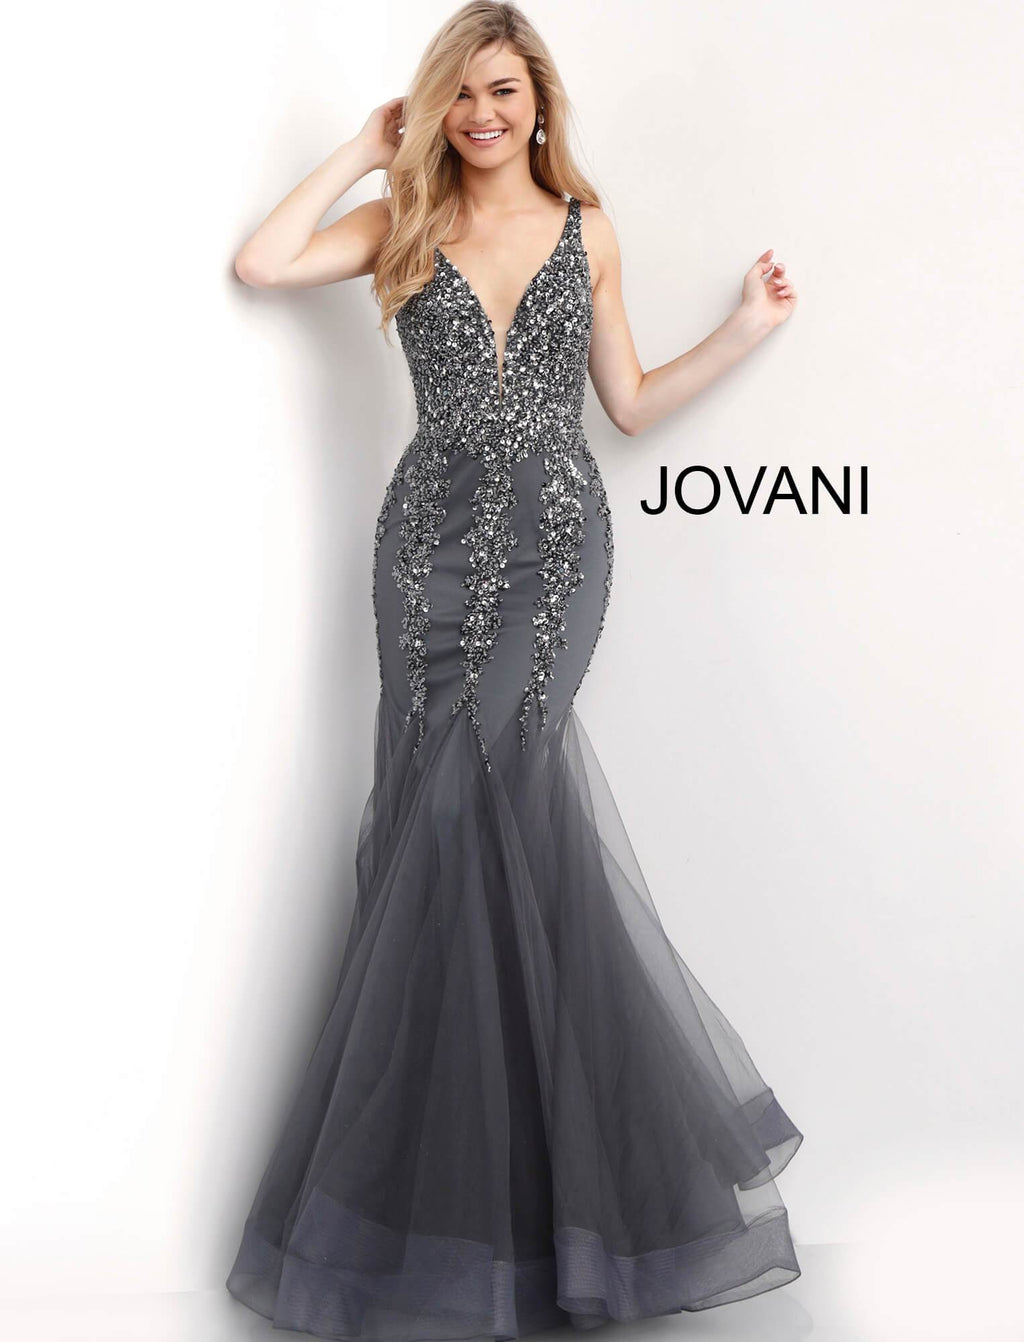 Jovani Mermaid Evening Gown